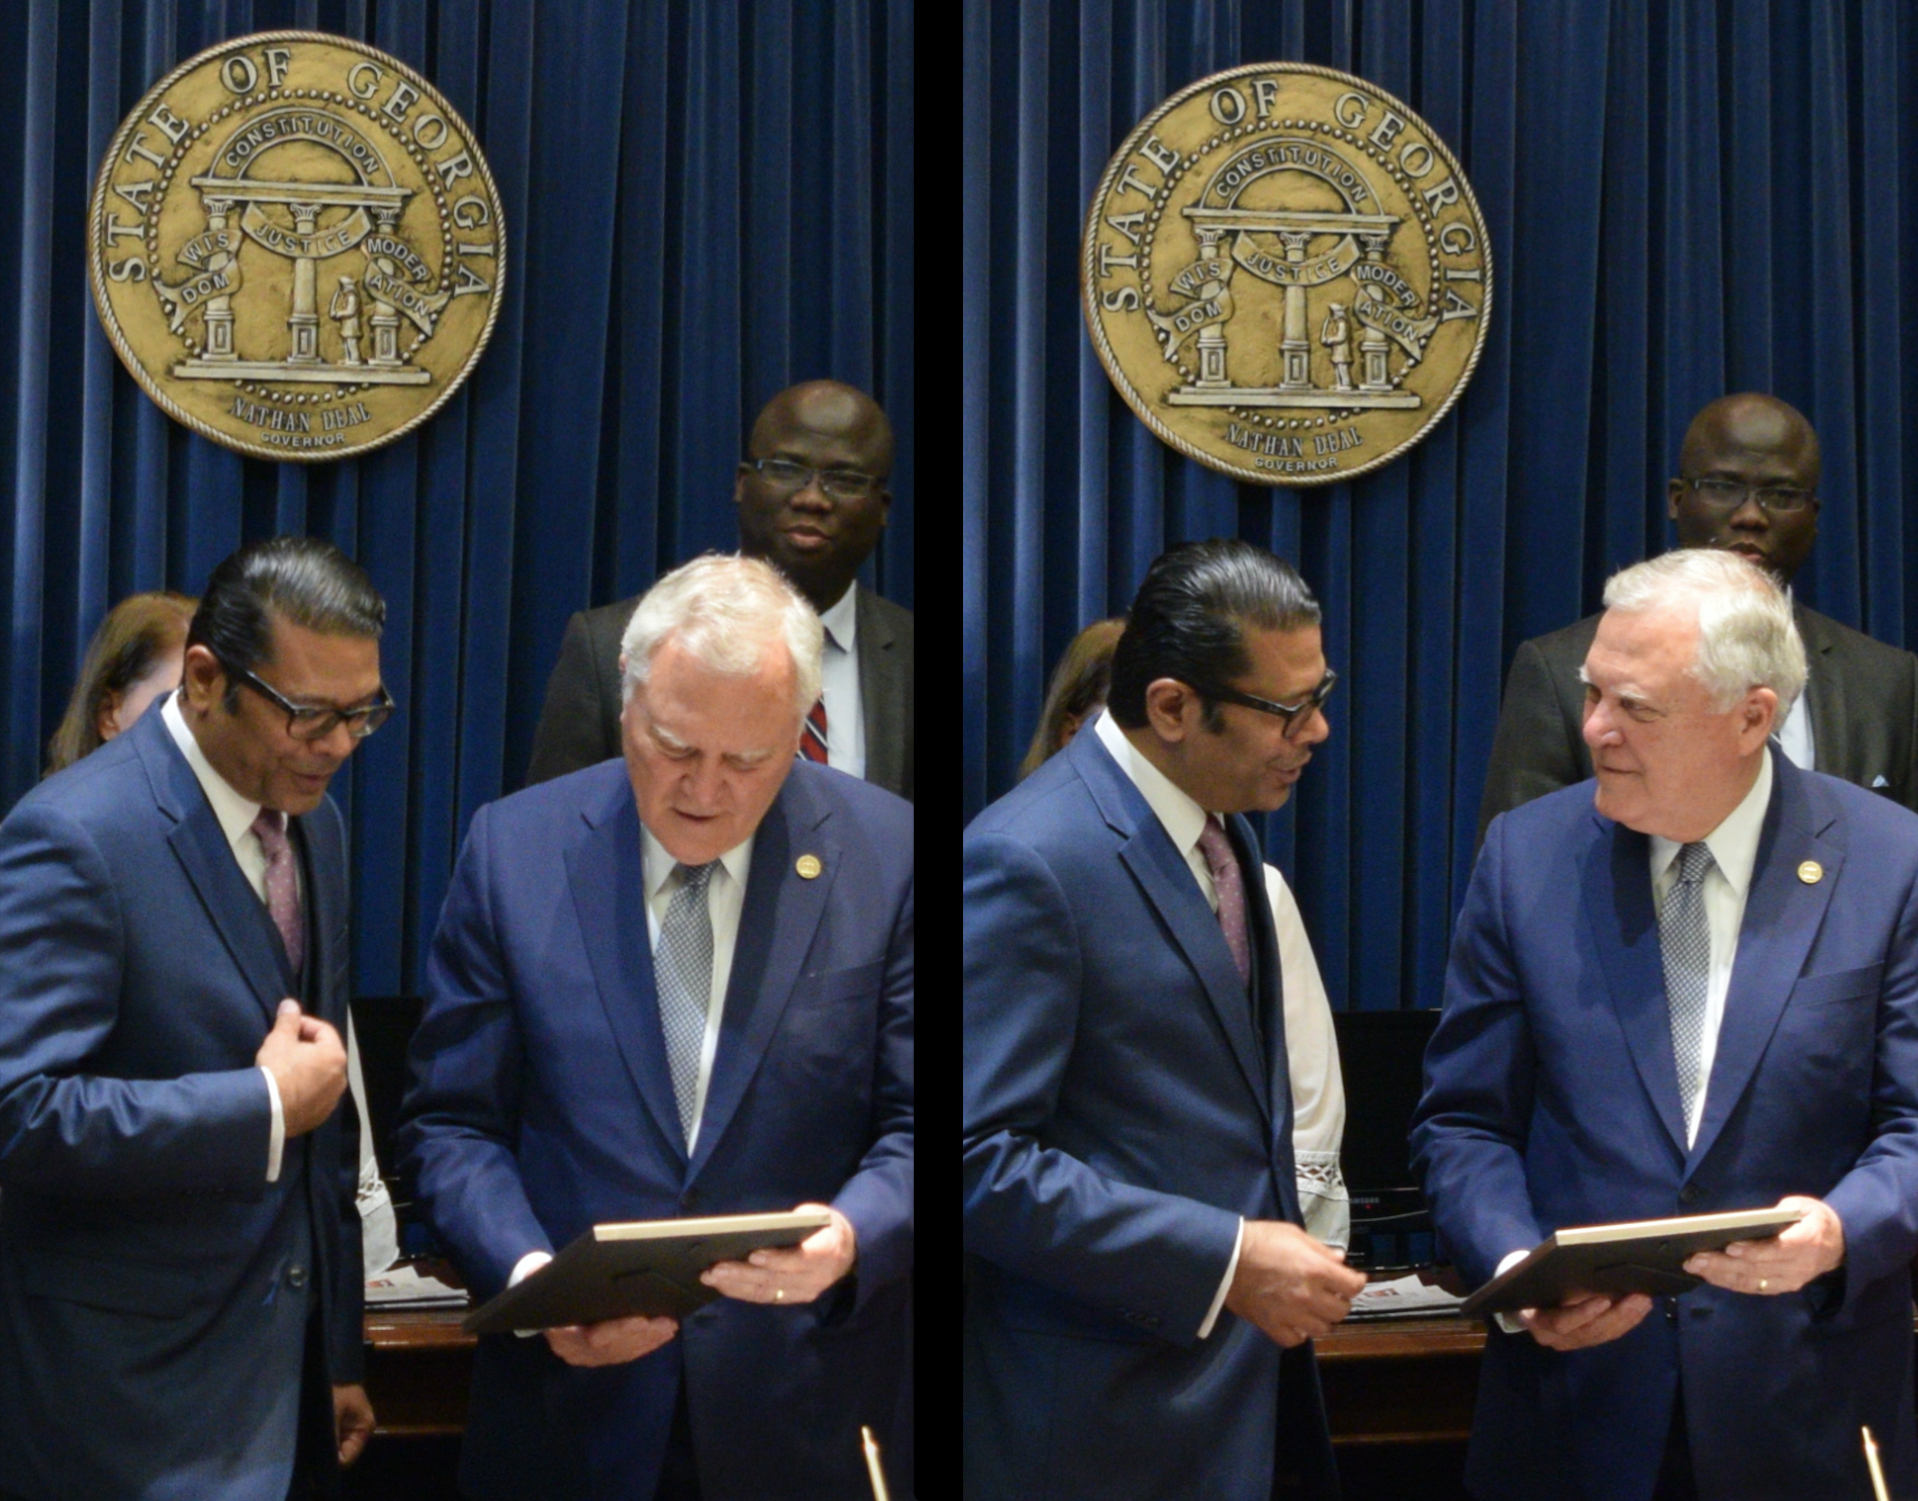 Farooq & Governor Deal